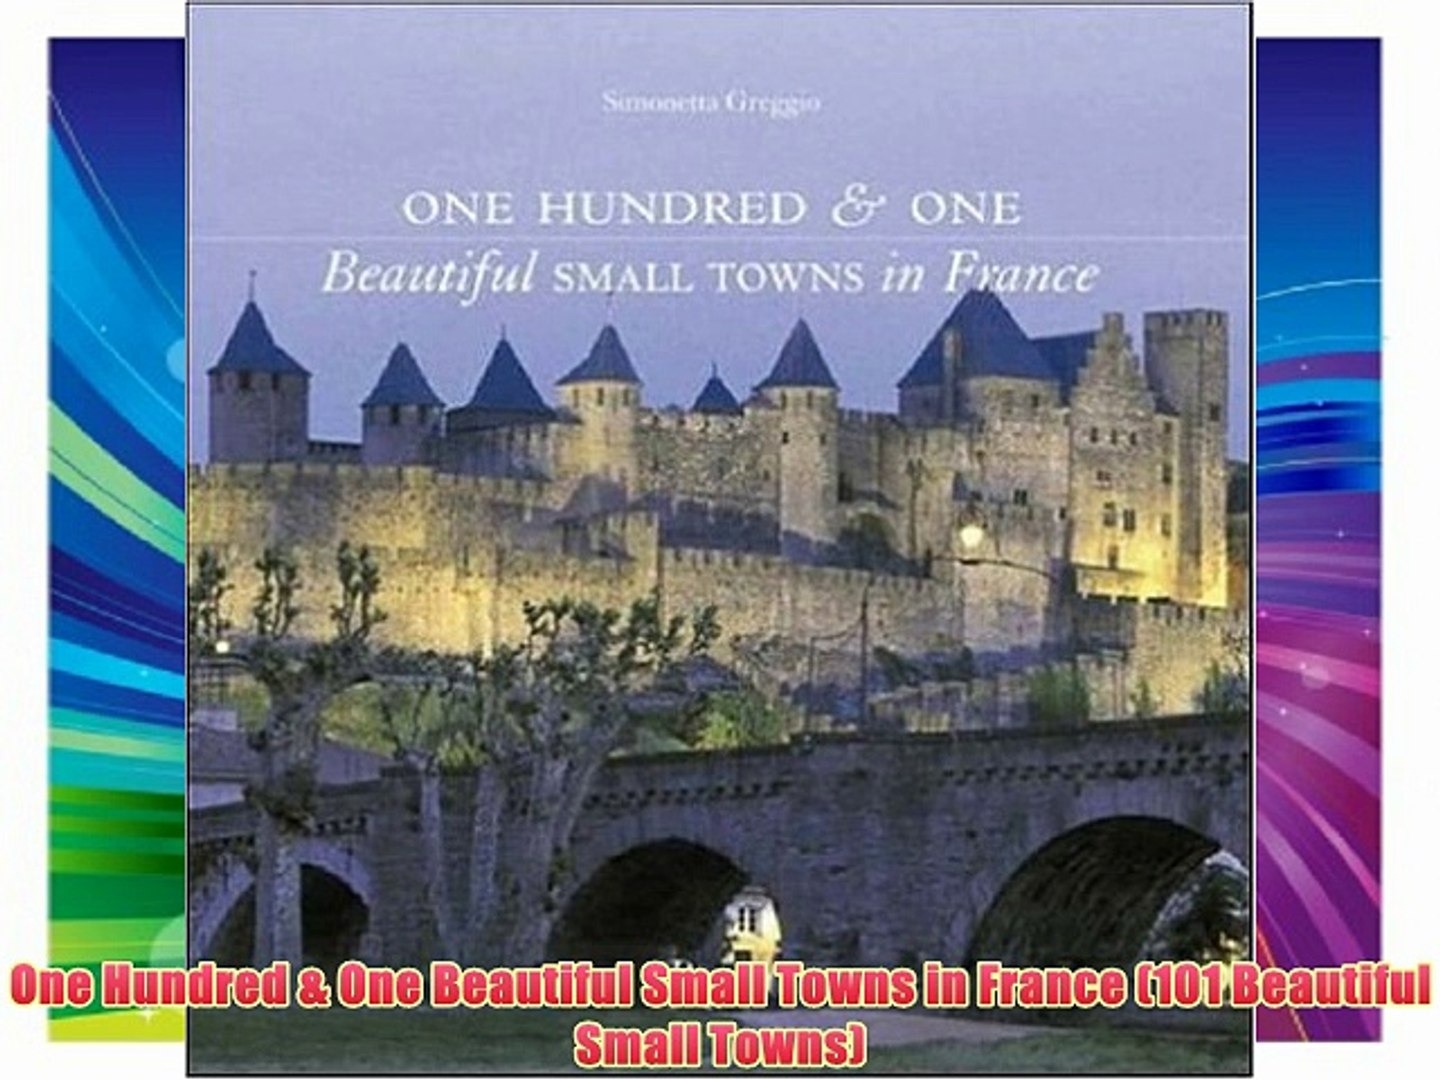 One Hundred & One Beautiful Small Towns in France (101 Beautiful Small Towns) Download Free